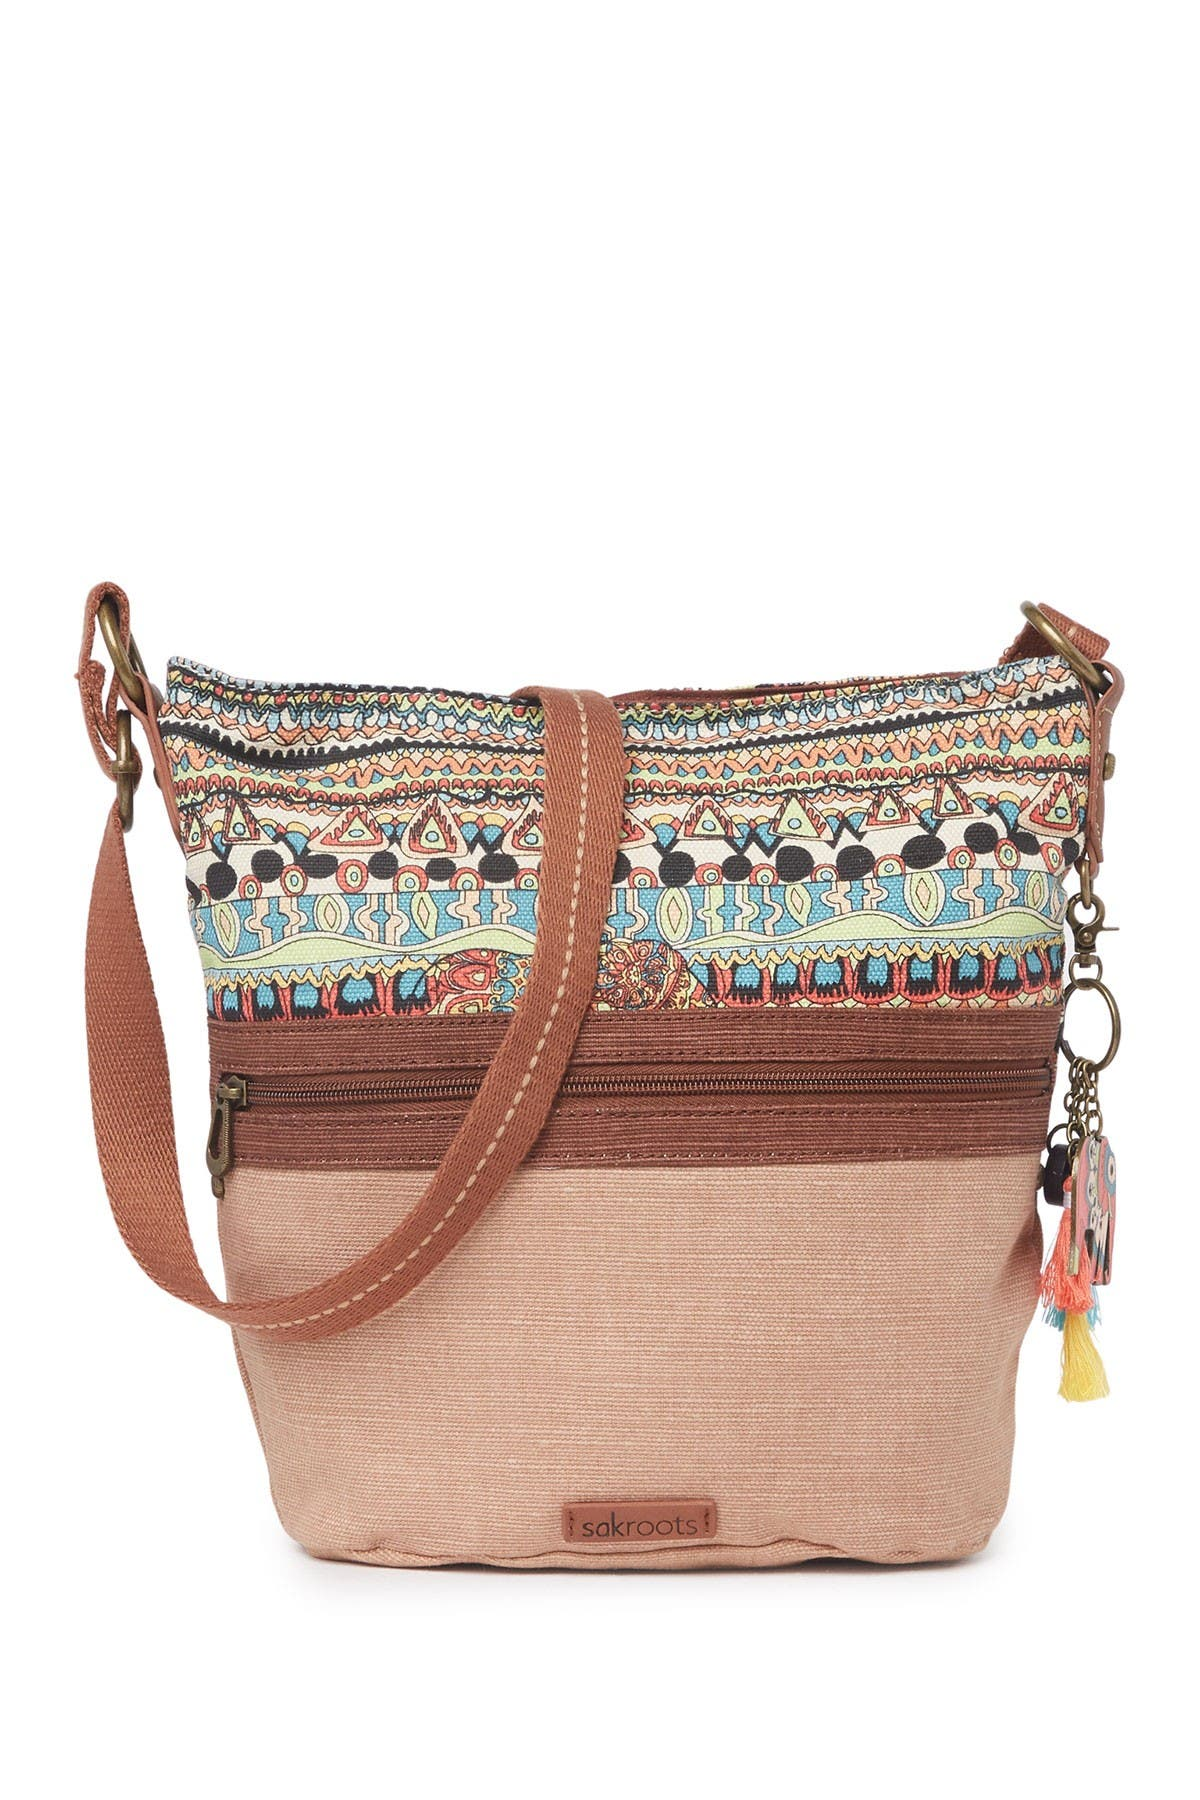 Image of The Sak Artist Circle Bucket Bag